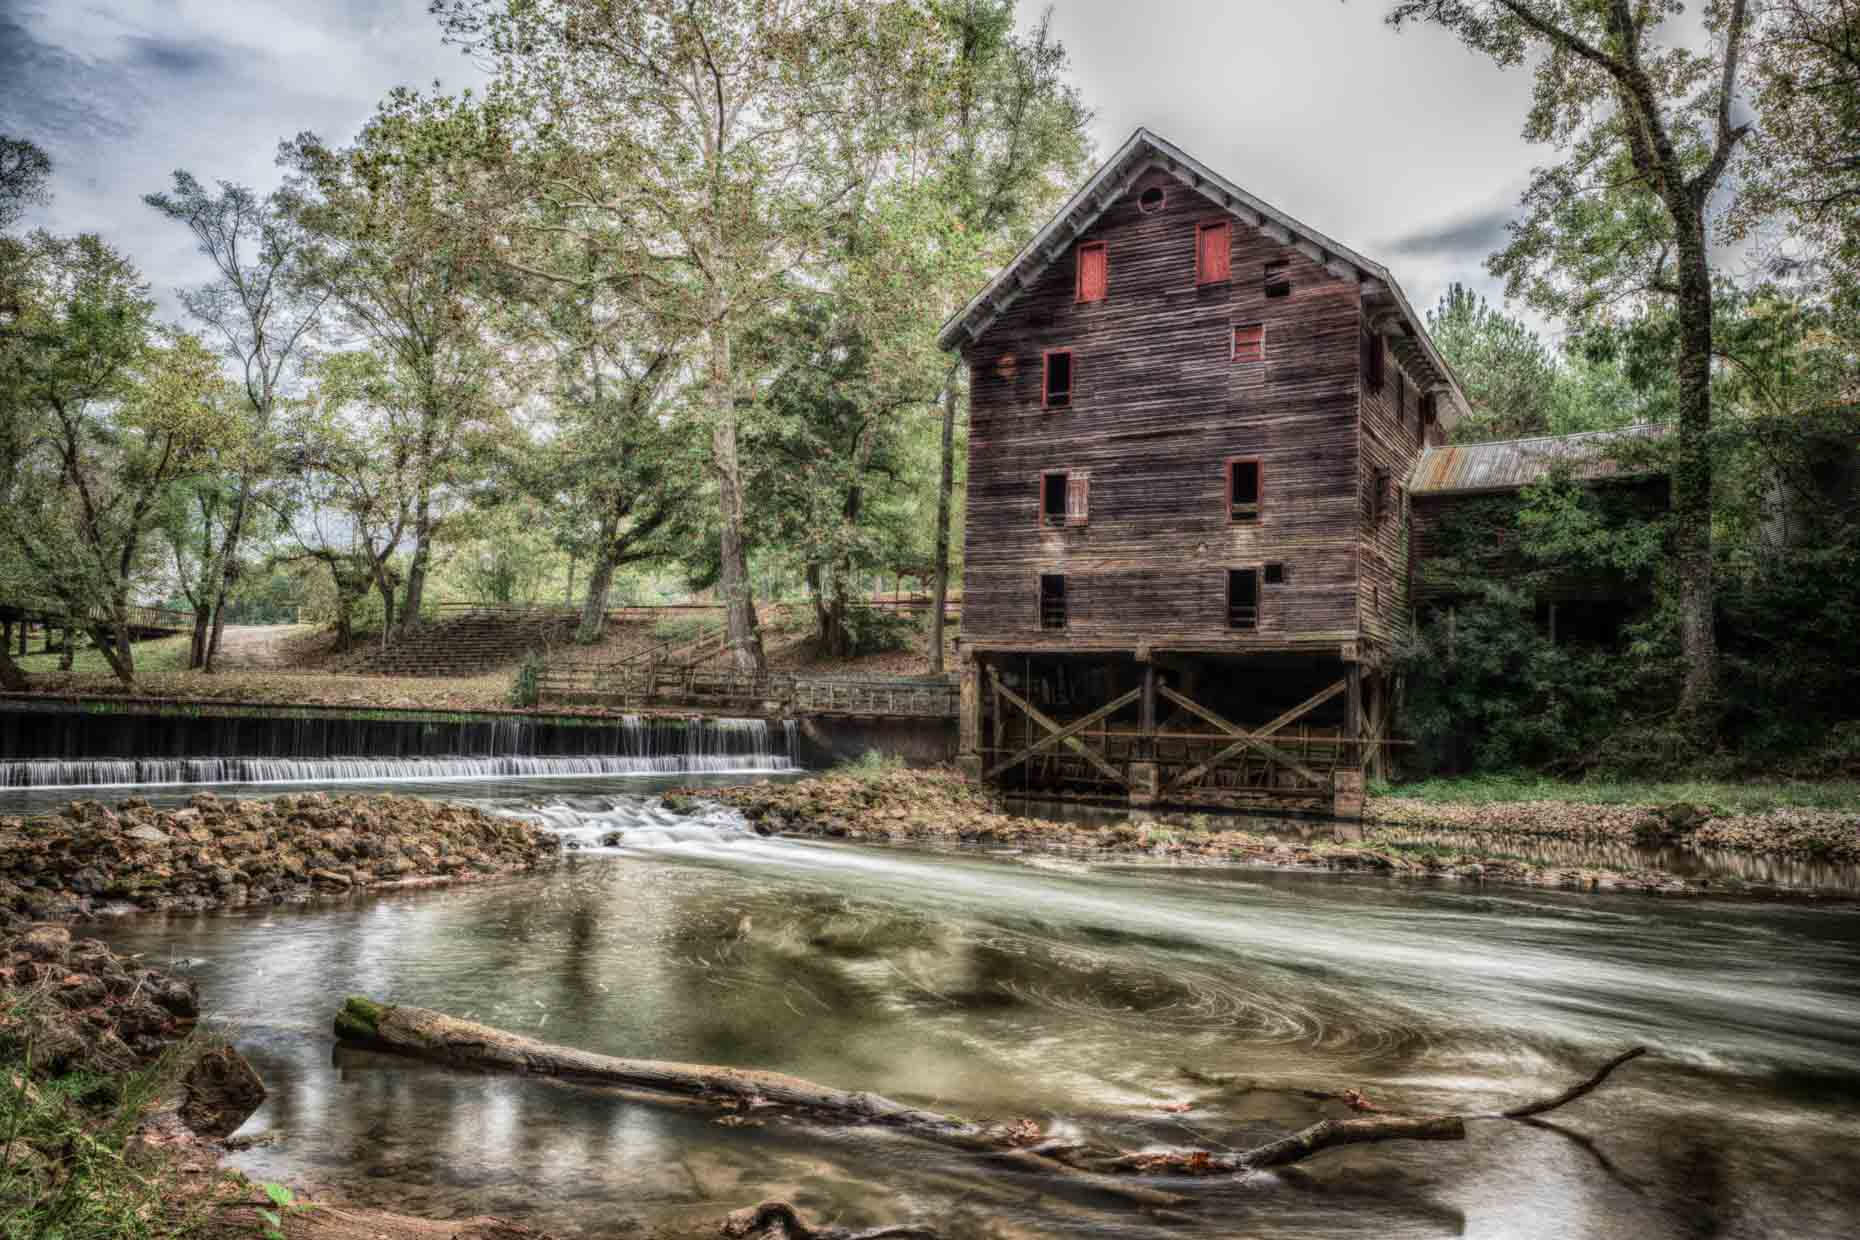 Kymulga Grist Mill and Covered Bridge  Shedrick Flowers